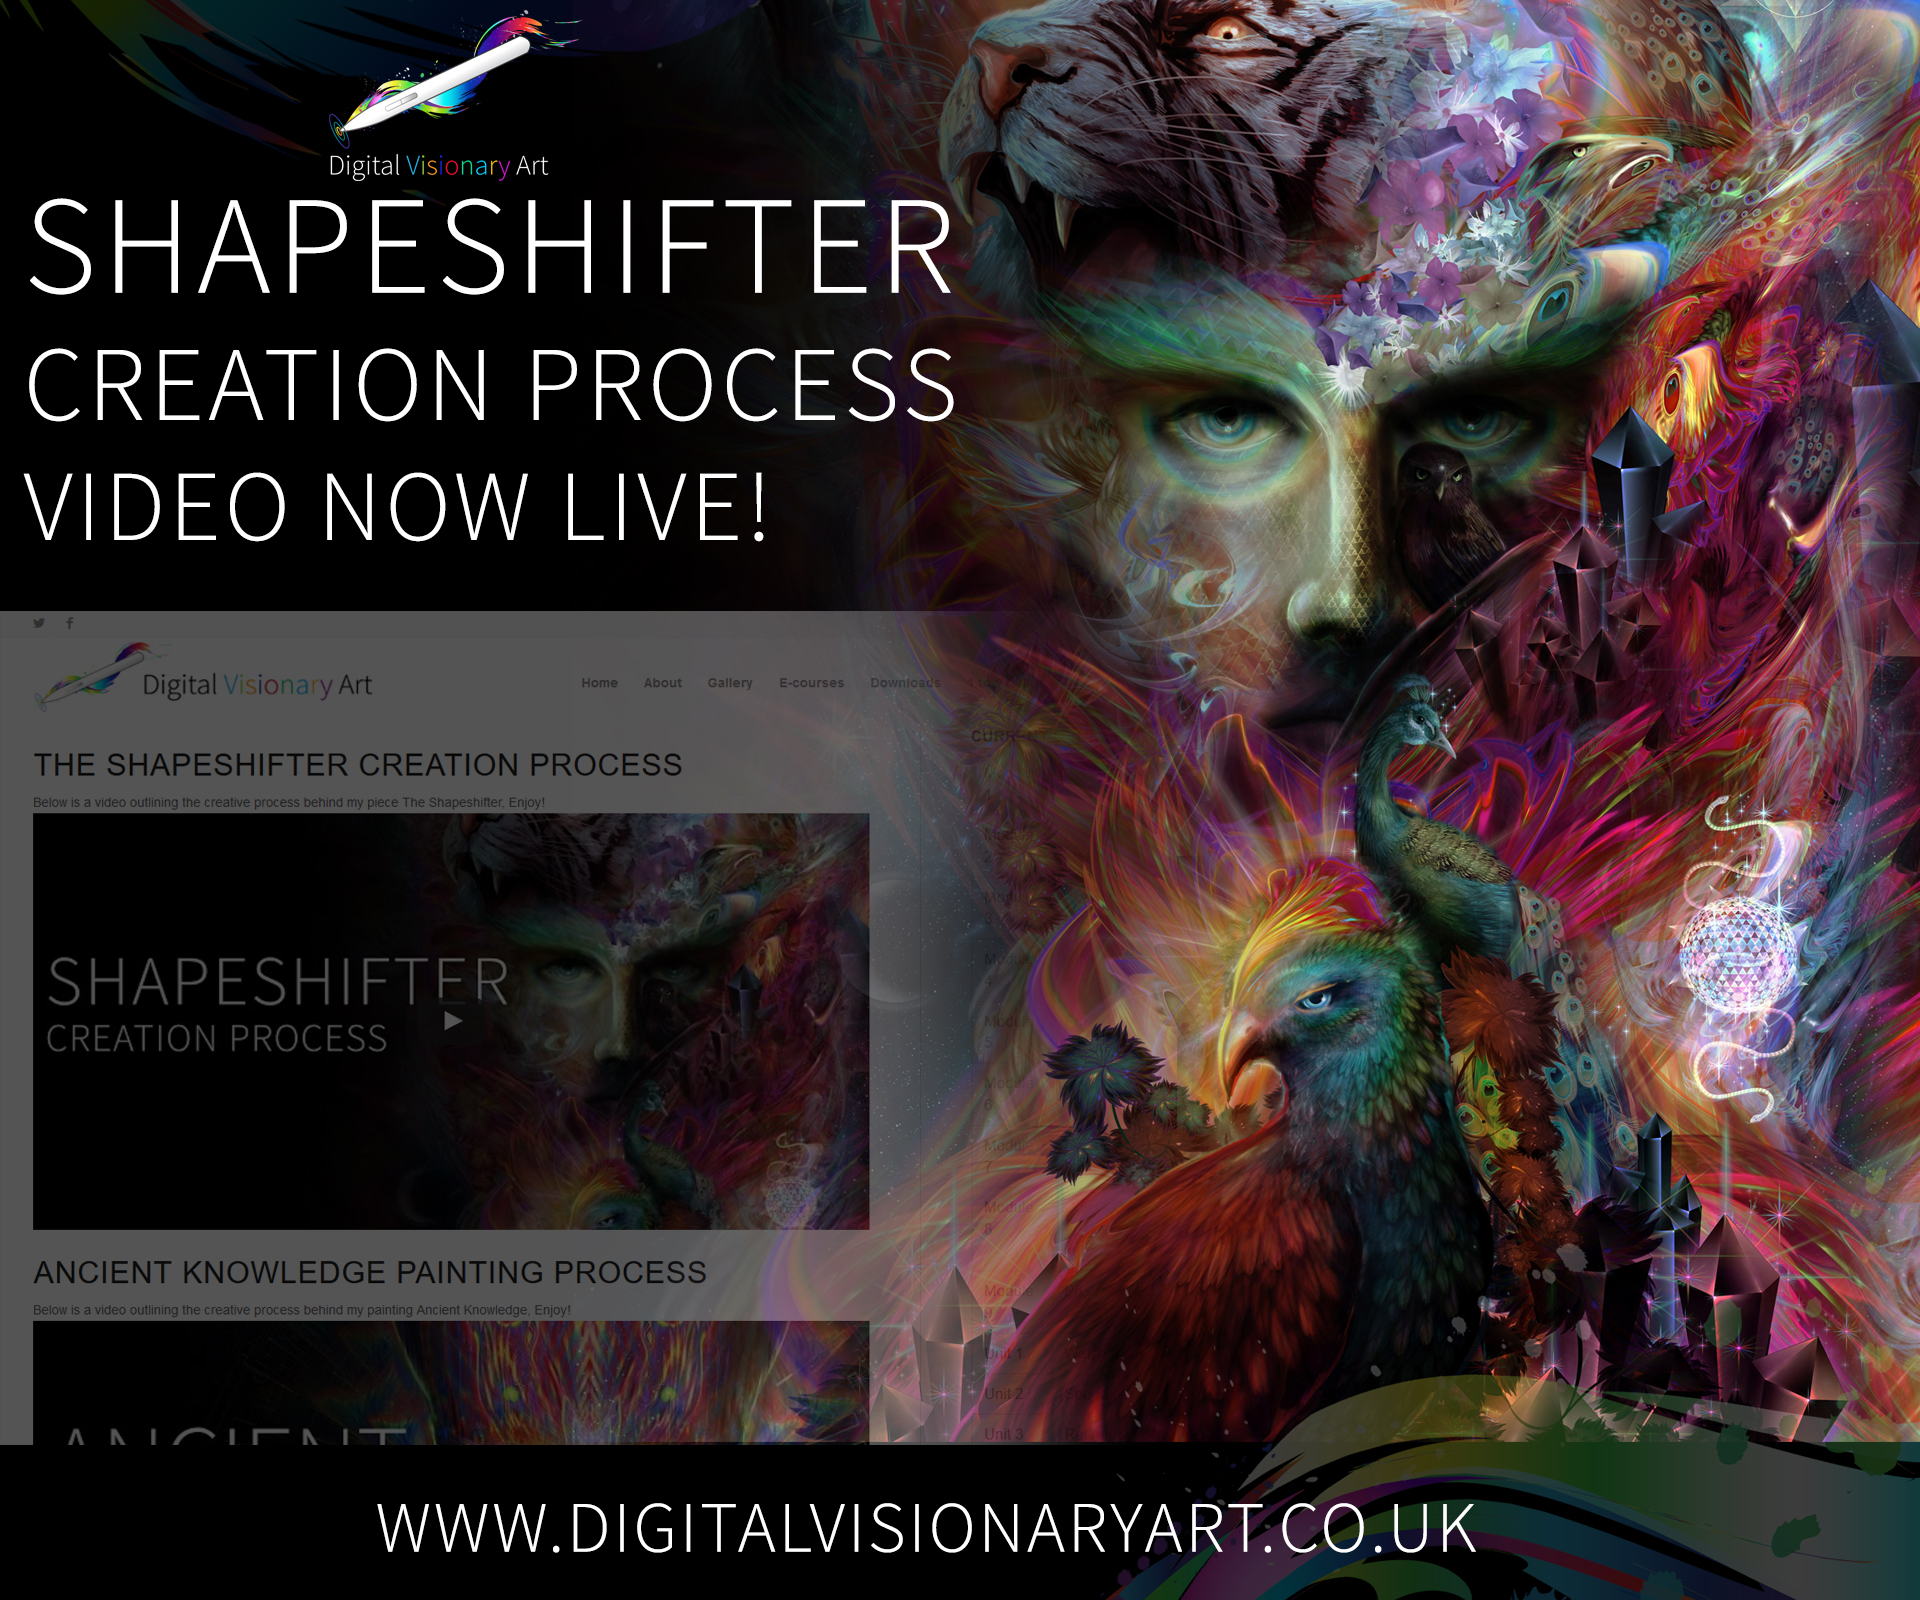 shapeshifter video now live!